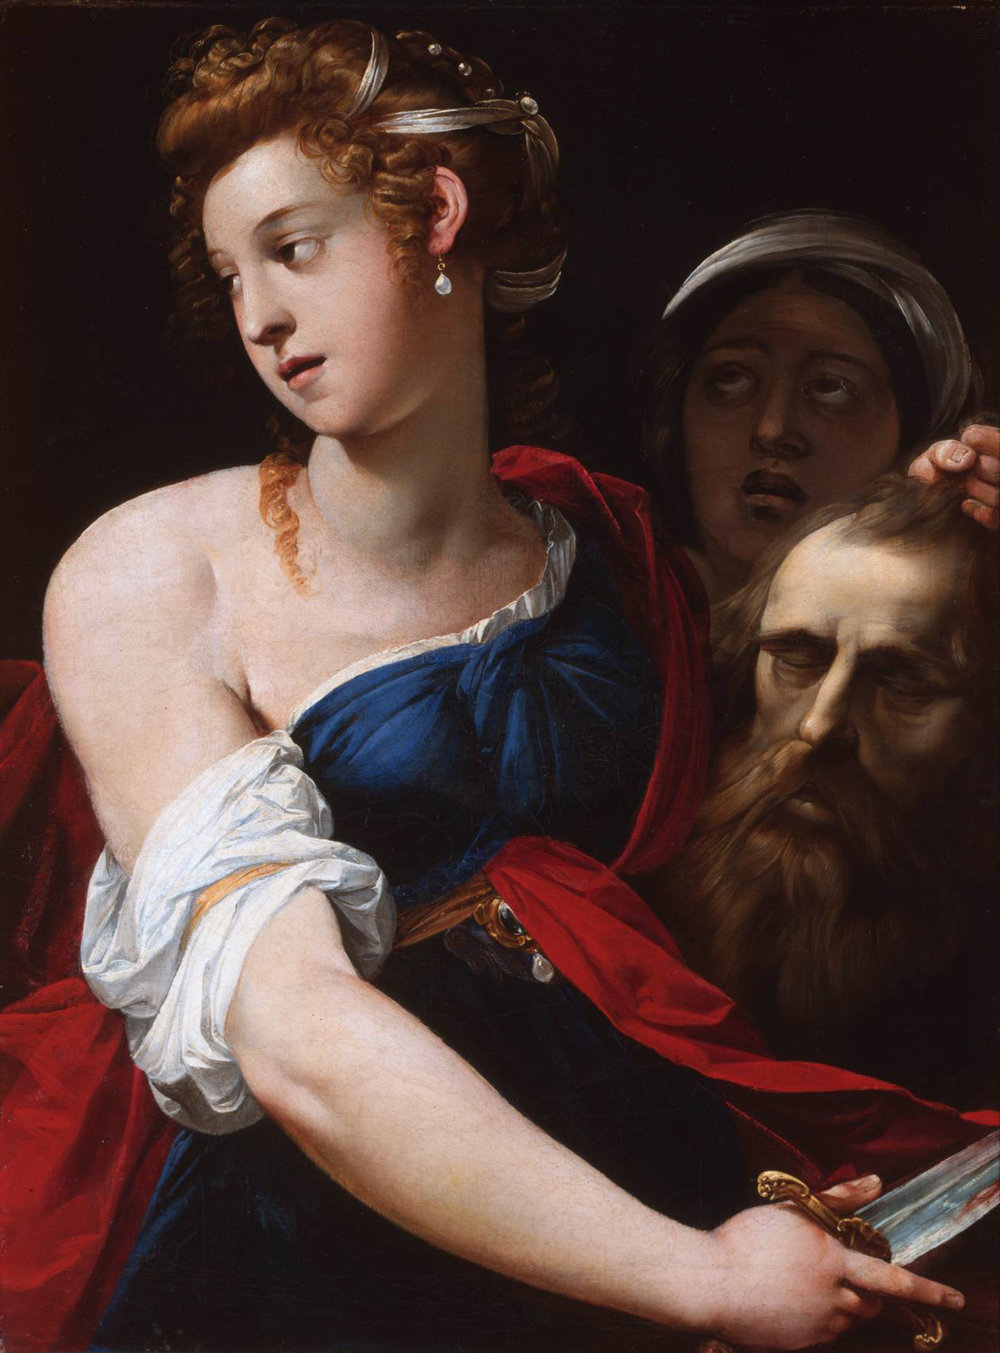 Cavalier d'Arpino, Judith with the Head of Holofernes, 1610